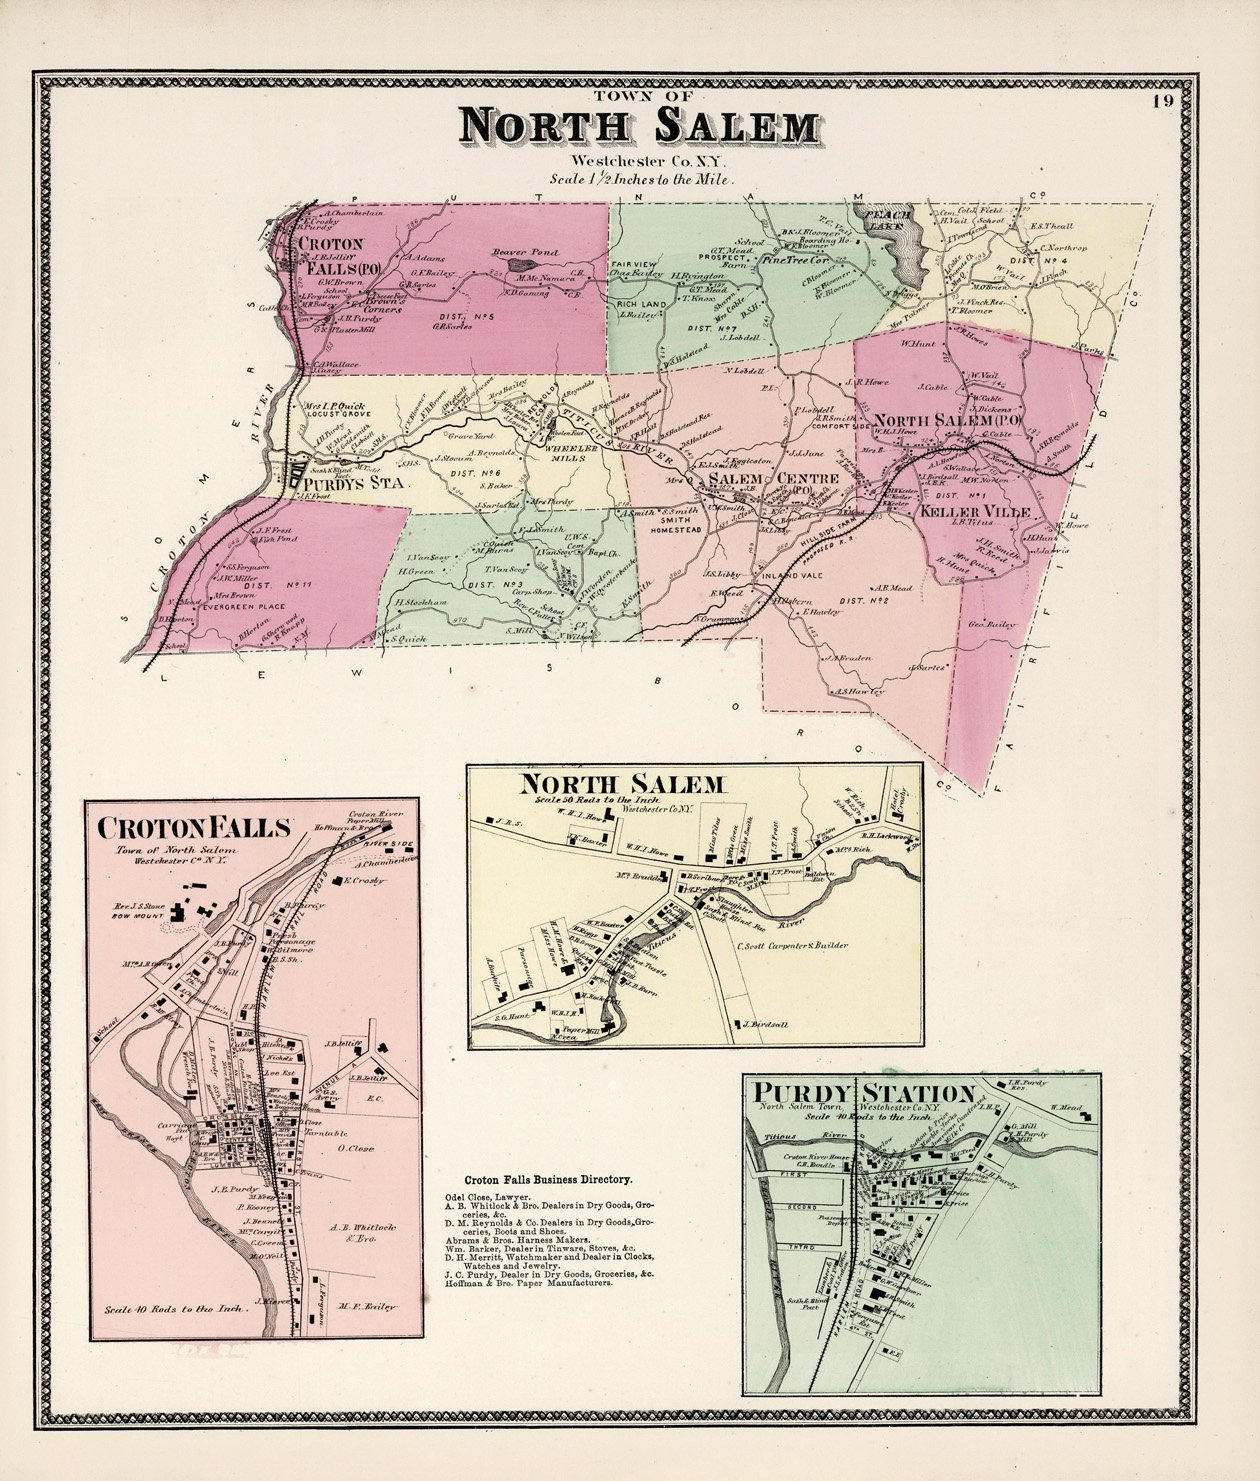 Salem New York Map.Amazon Com Map Poster Town Of North Salem Westchester County